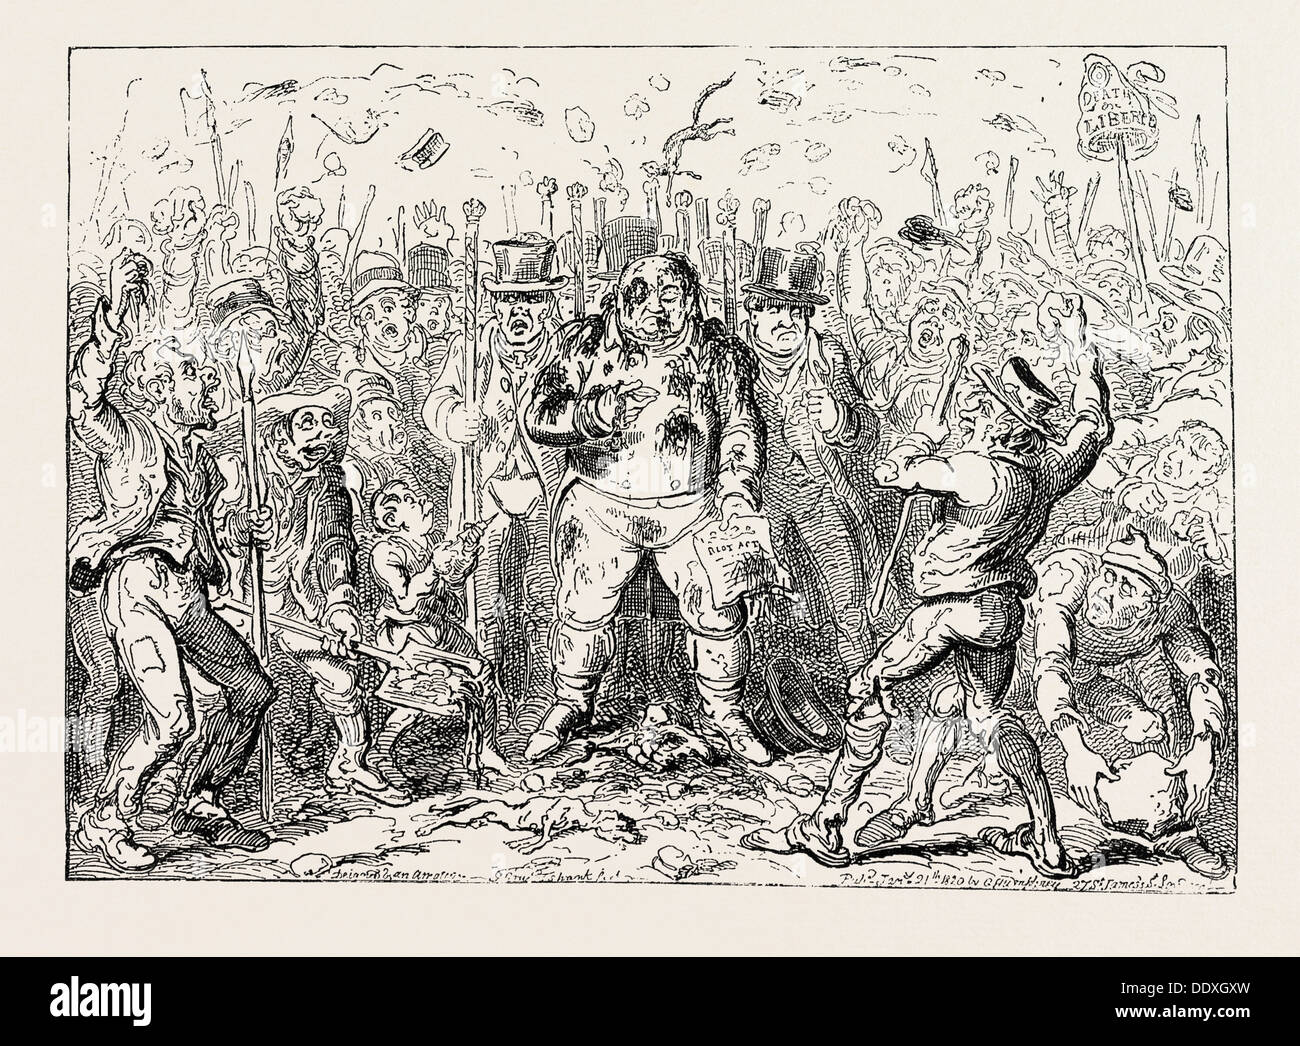 GEORGE CRUIKSHANK: THE LAW'S DELAY! - Stock Image